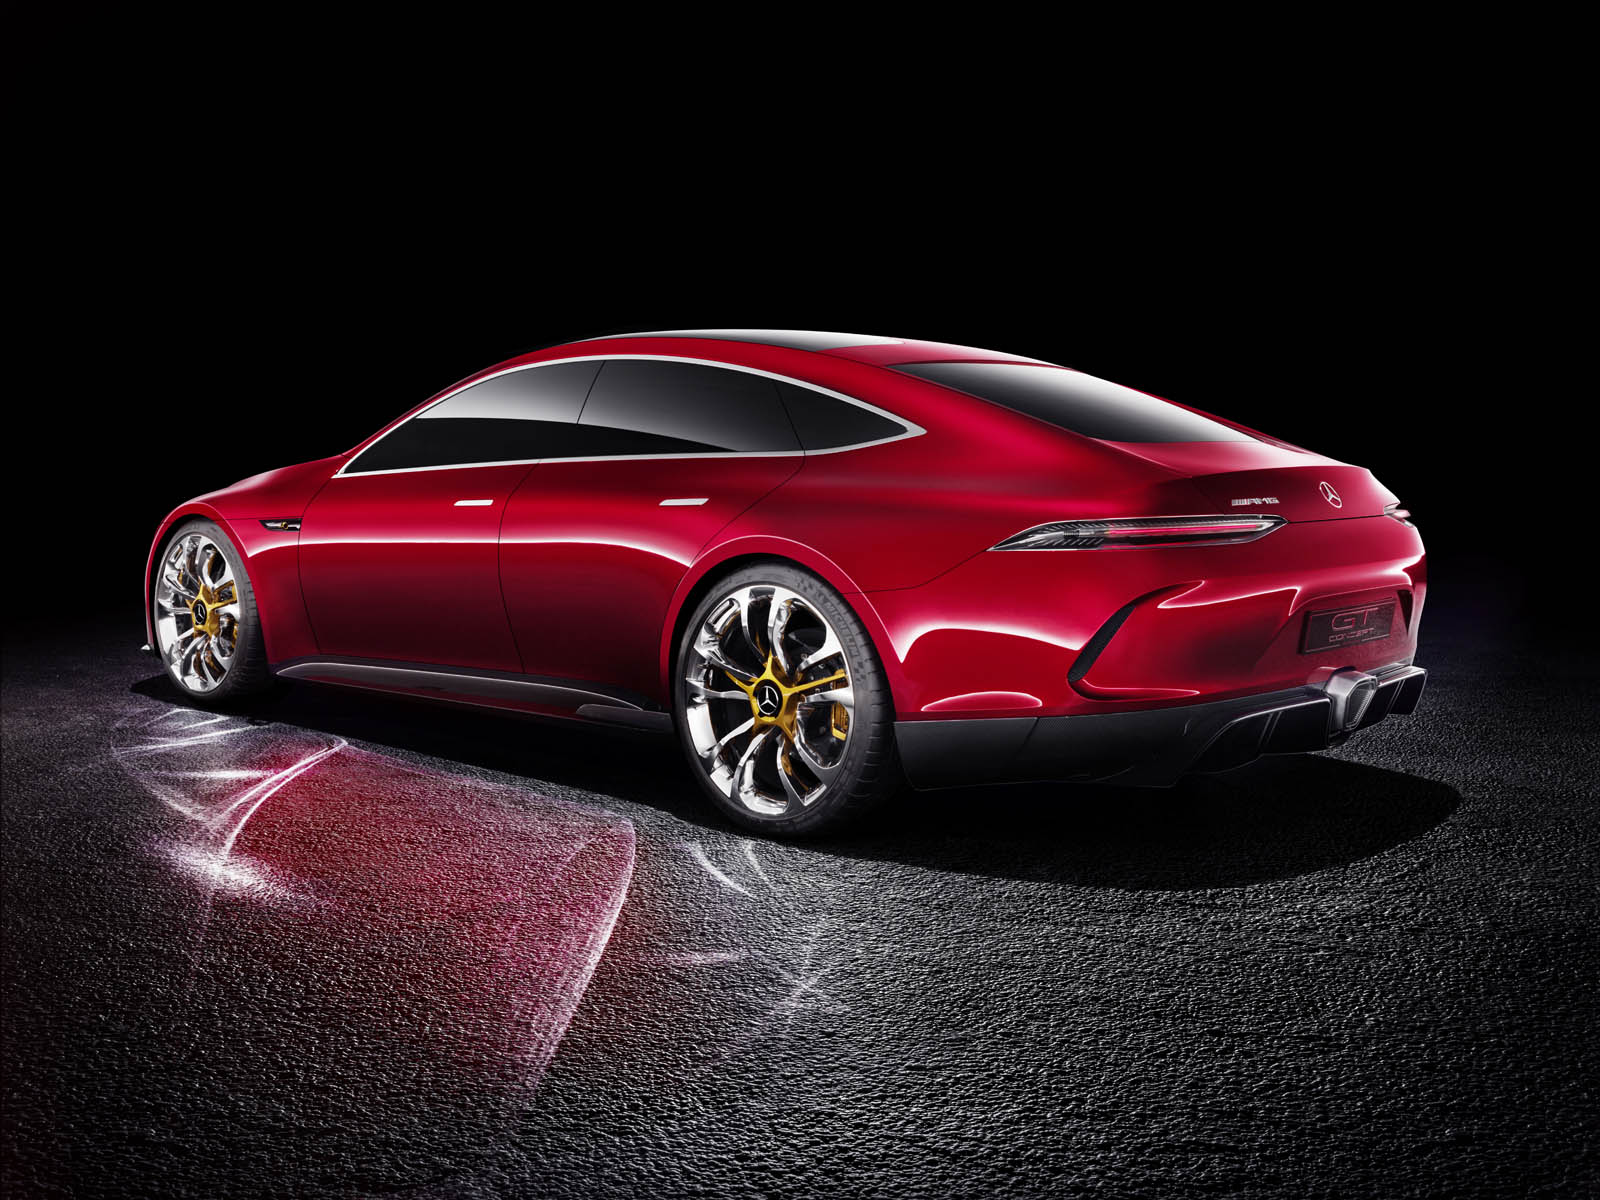 New Mercedes AMG GT Concept Previews New Performance Saloon